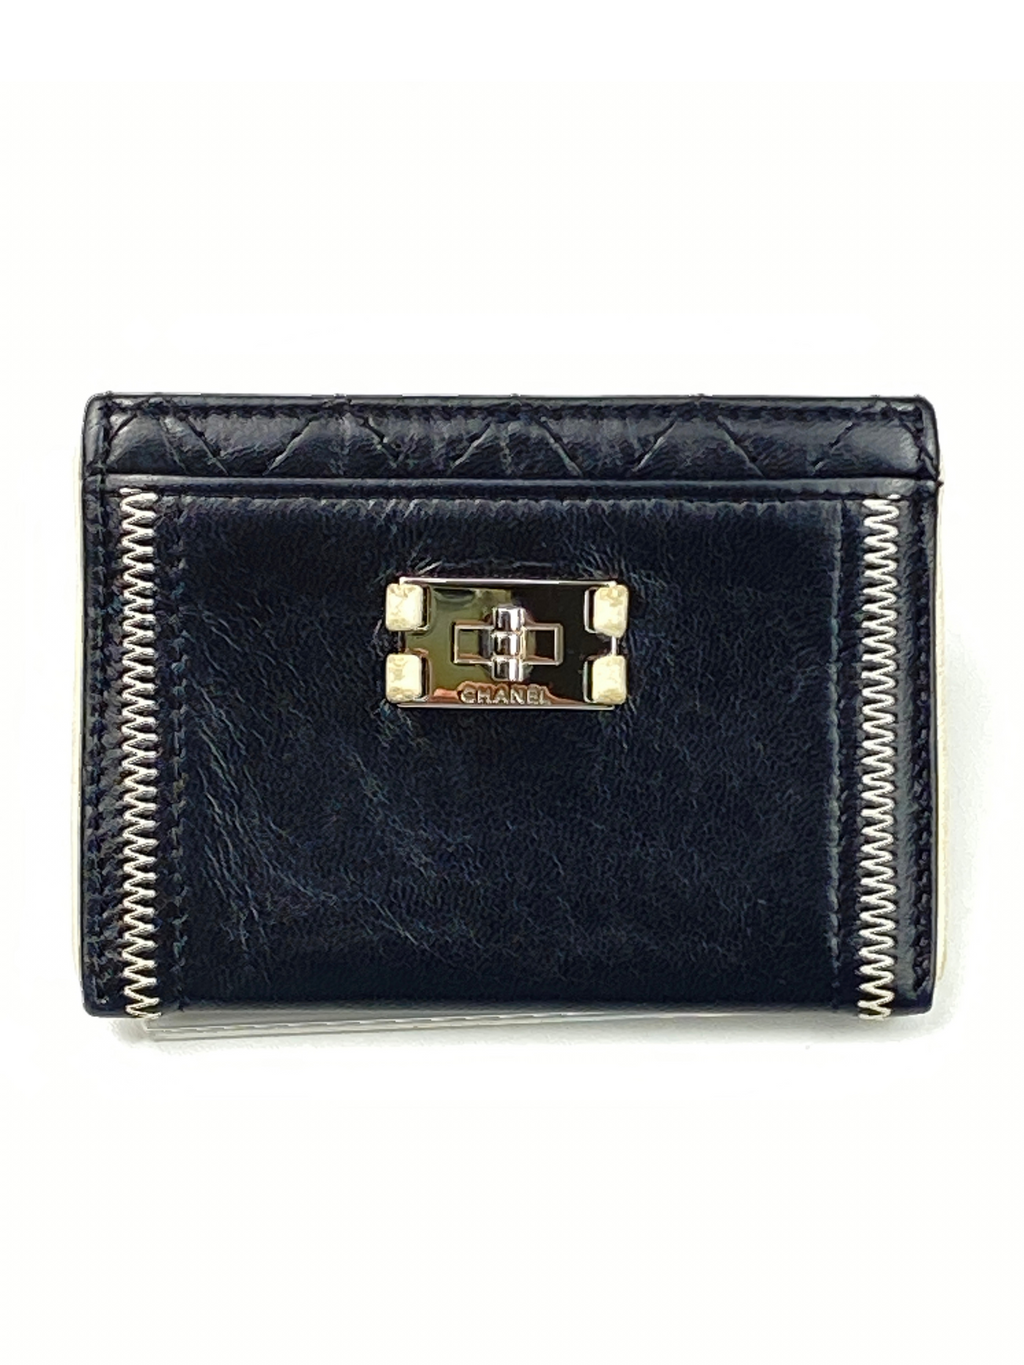 CHANEL - BLACK LEATHER 2.55 CARD HOLDER WHITE TRIM